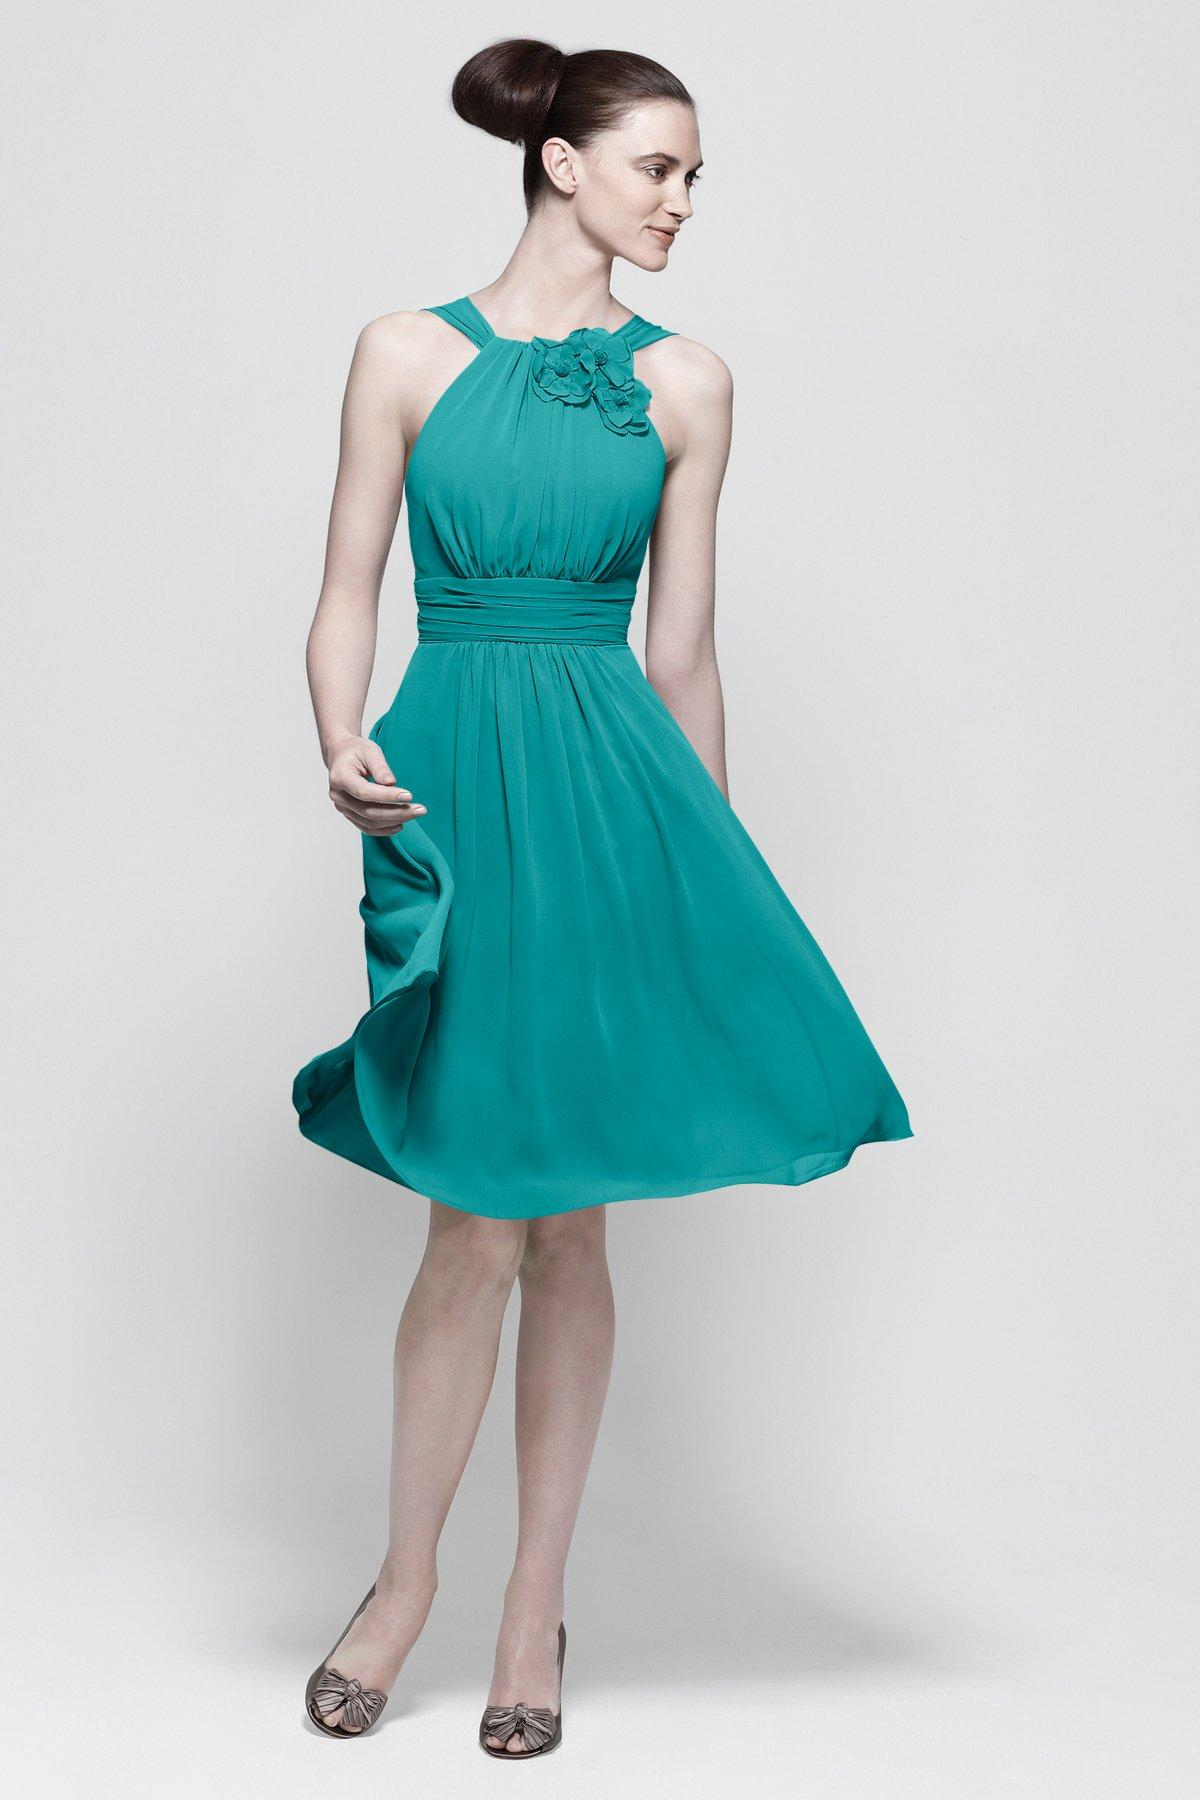 Turquoise Bridesmaid Dresses 2015 Short Maid Of Honor Dresses ...